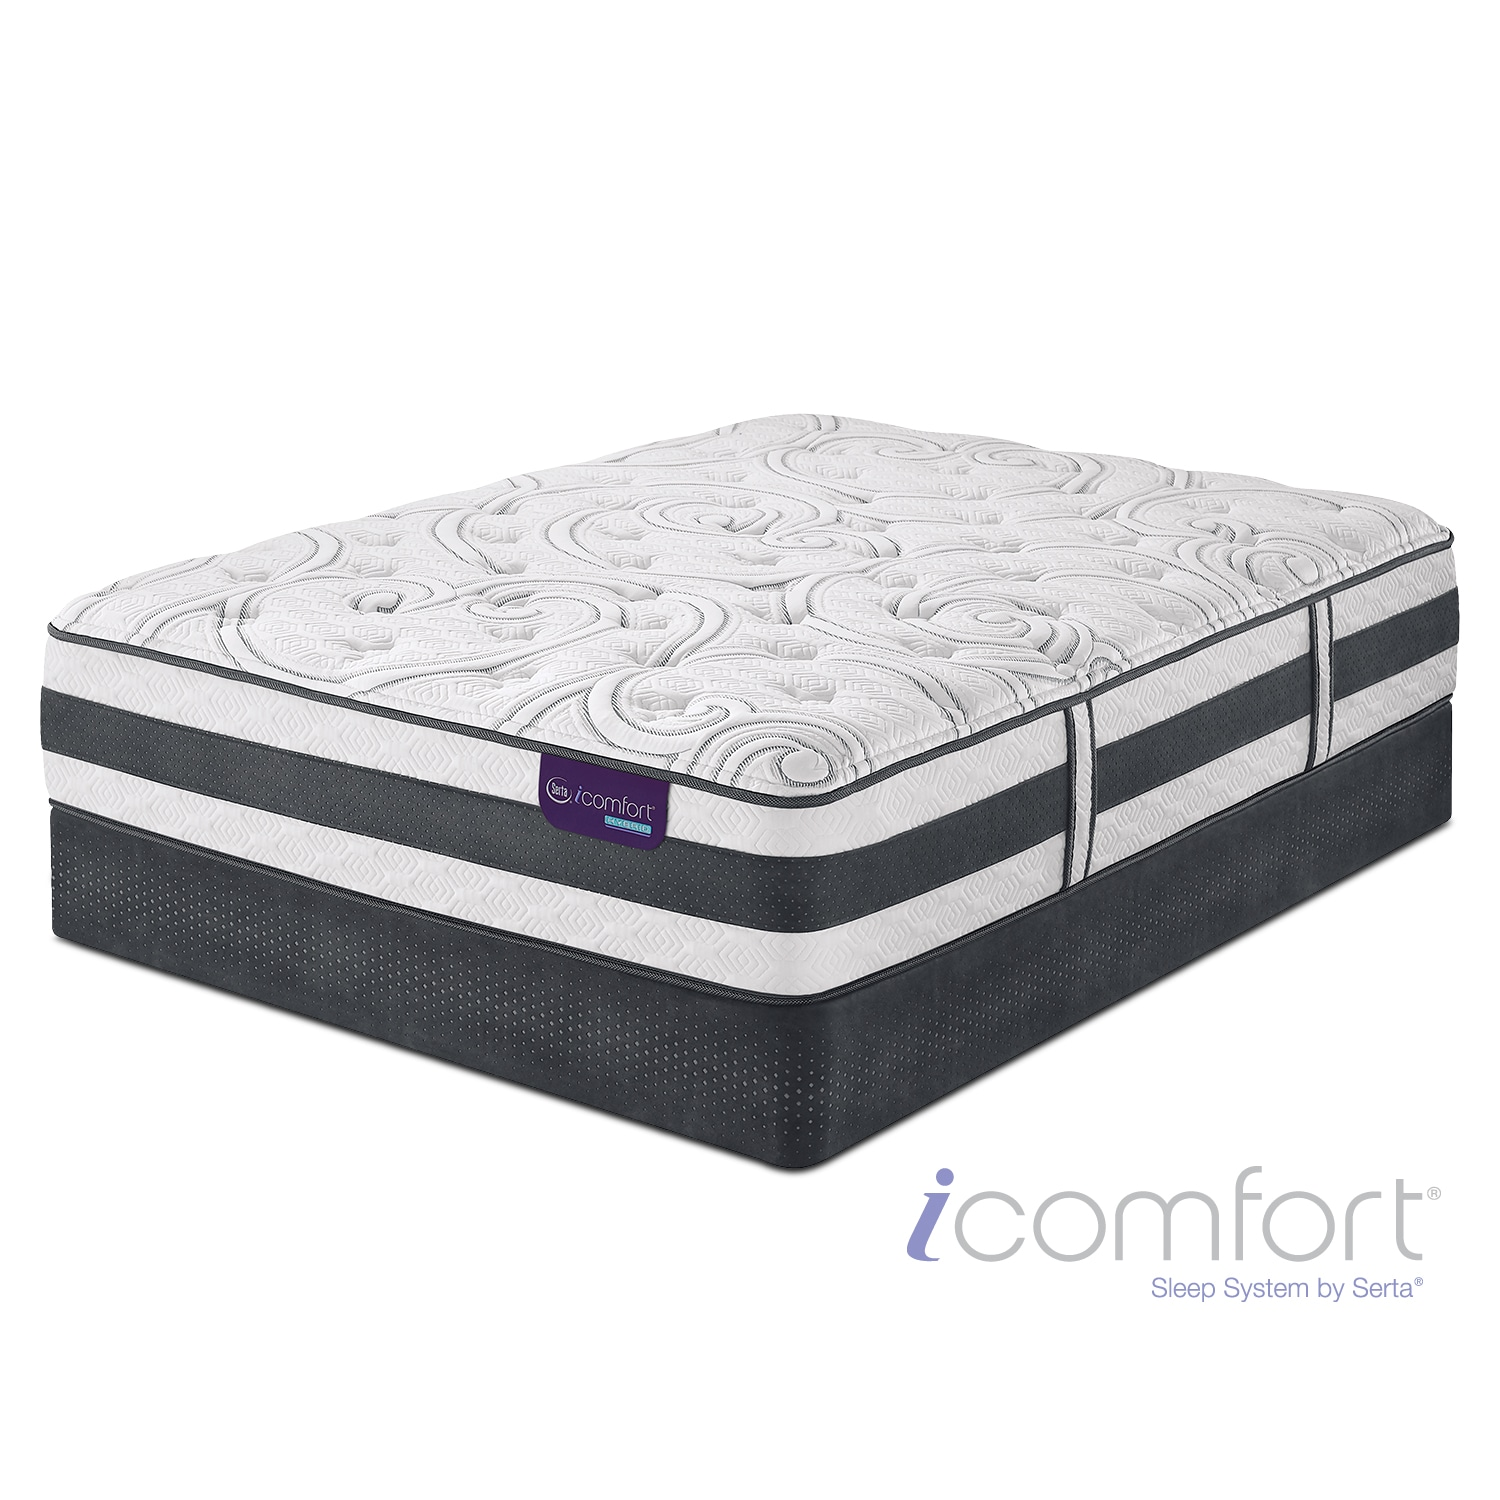 [Recognition Full Mattress/Foundation Set]